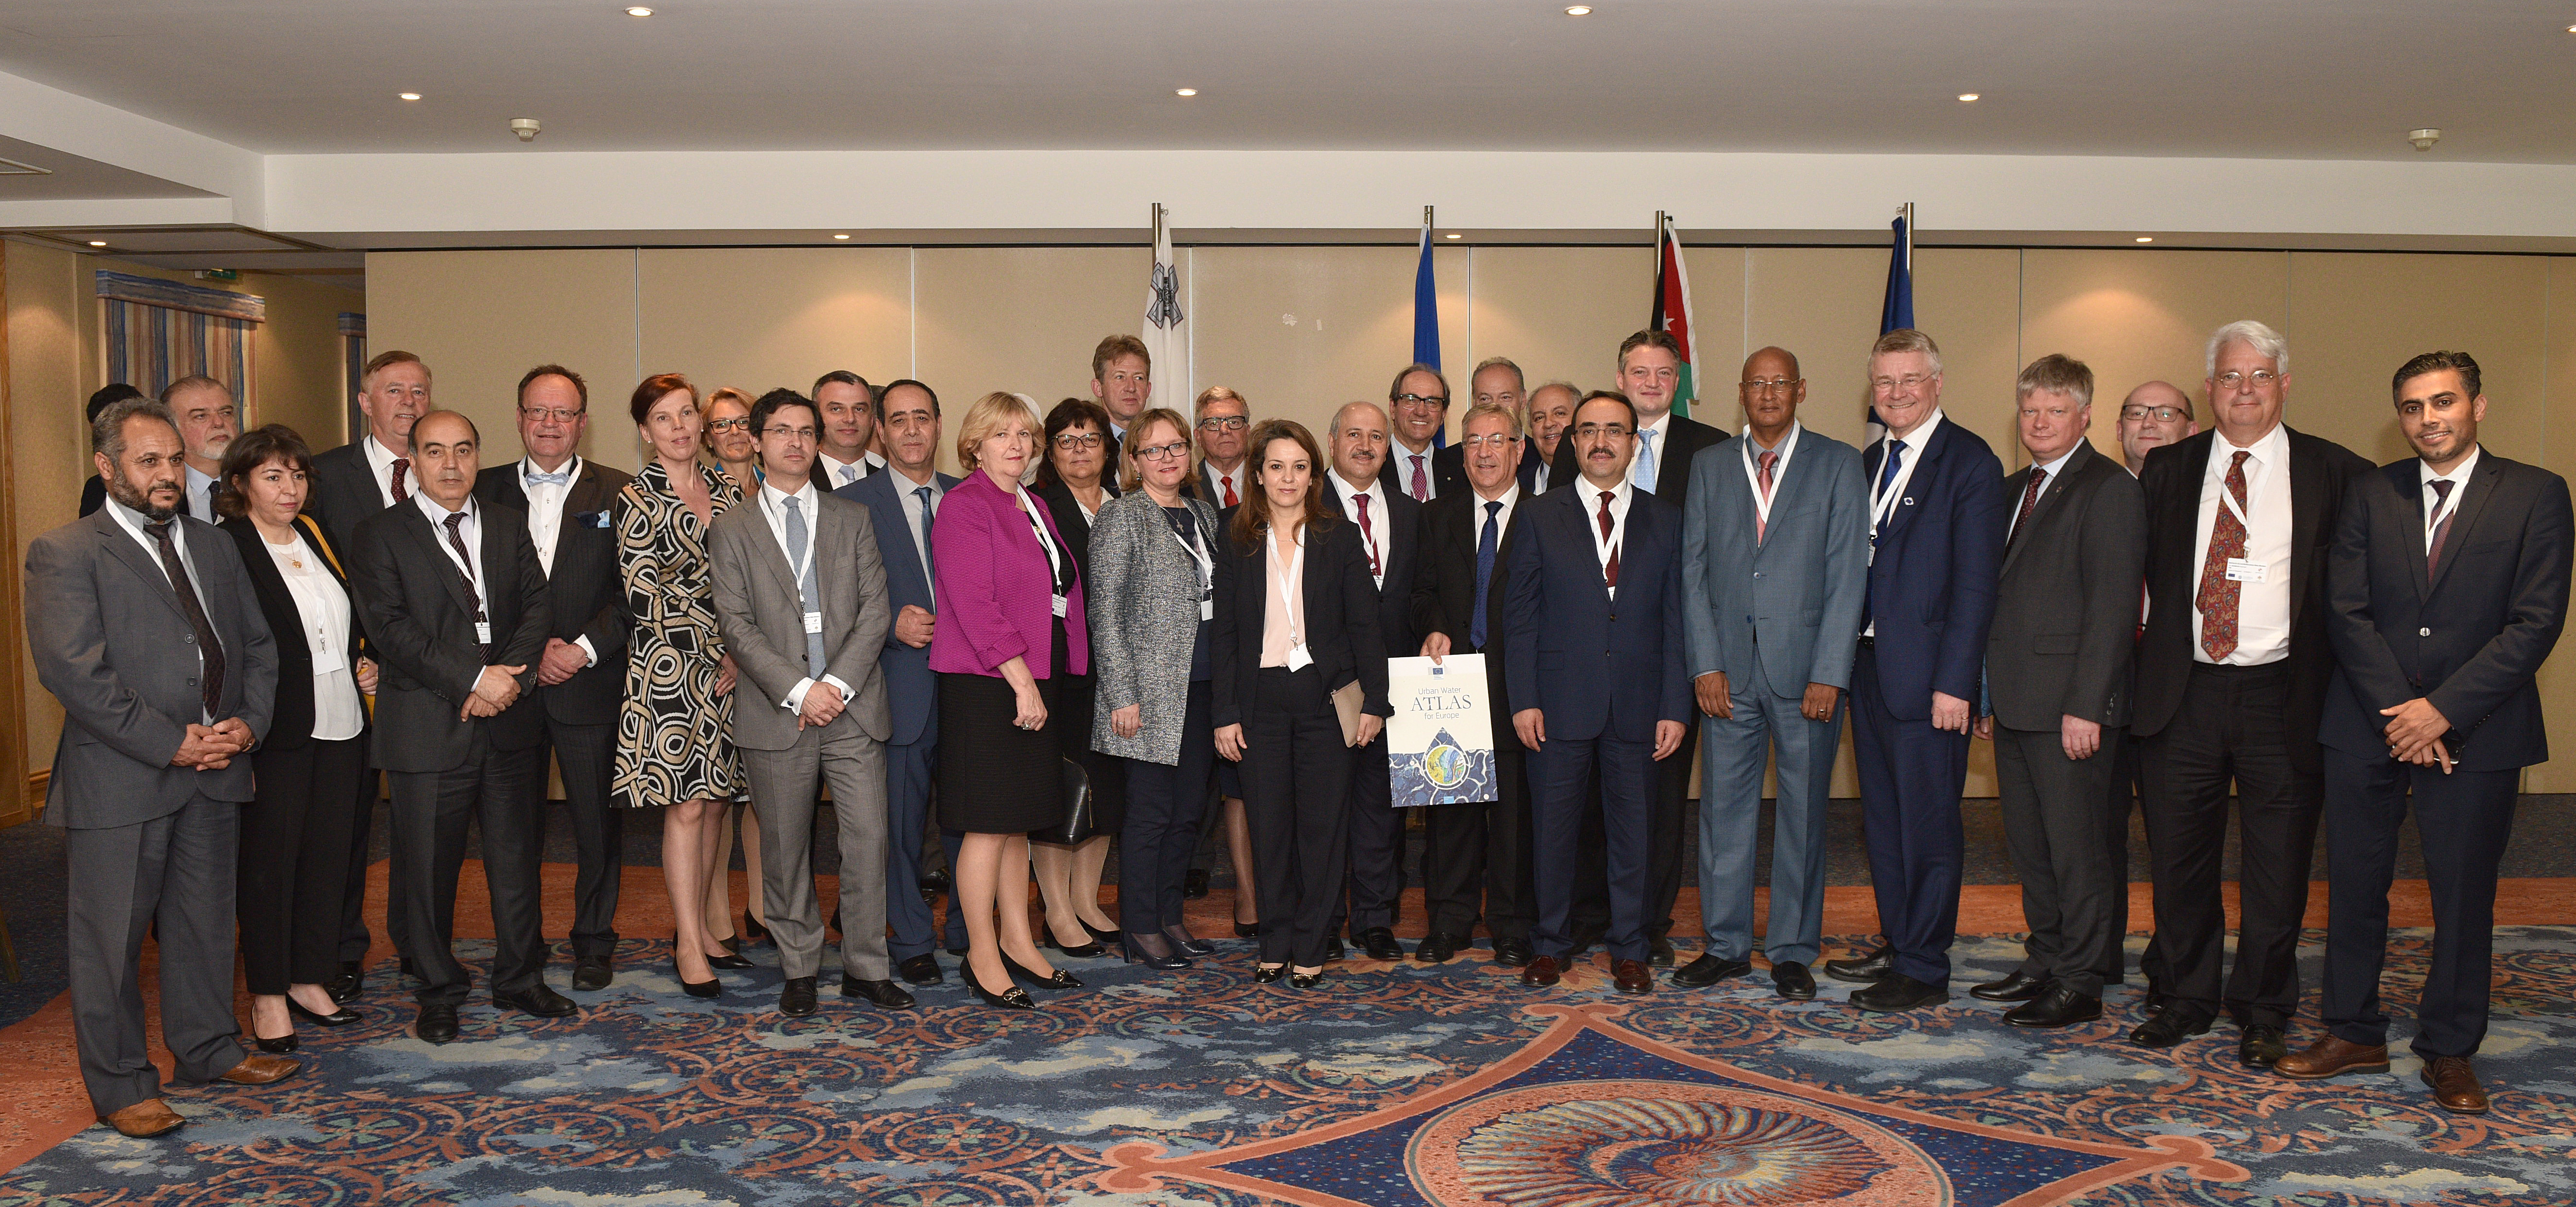 27 April 2017, Valetta, Malta – Ministerial Meeting of the European Union and Mediterranean Water Ministries